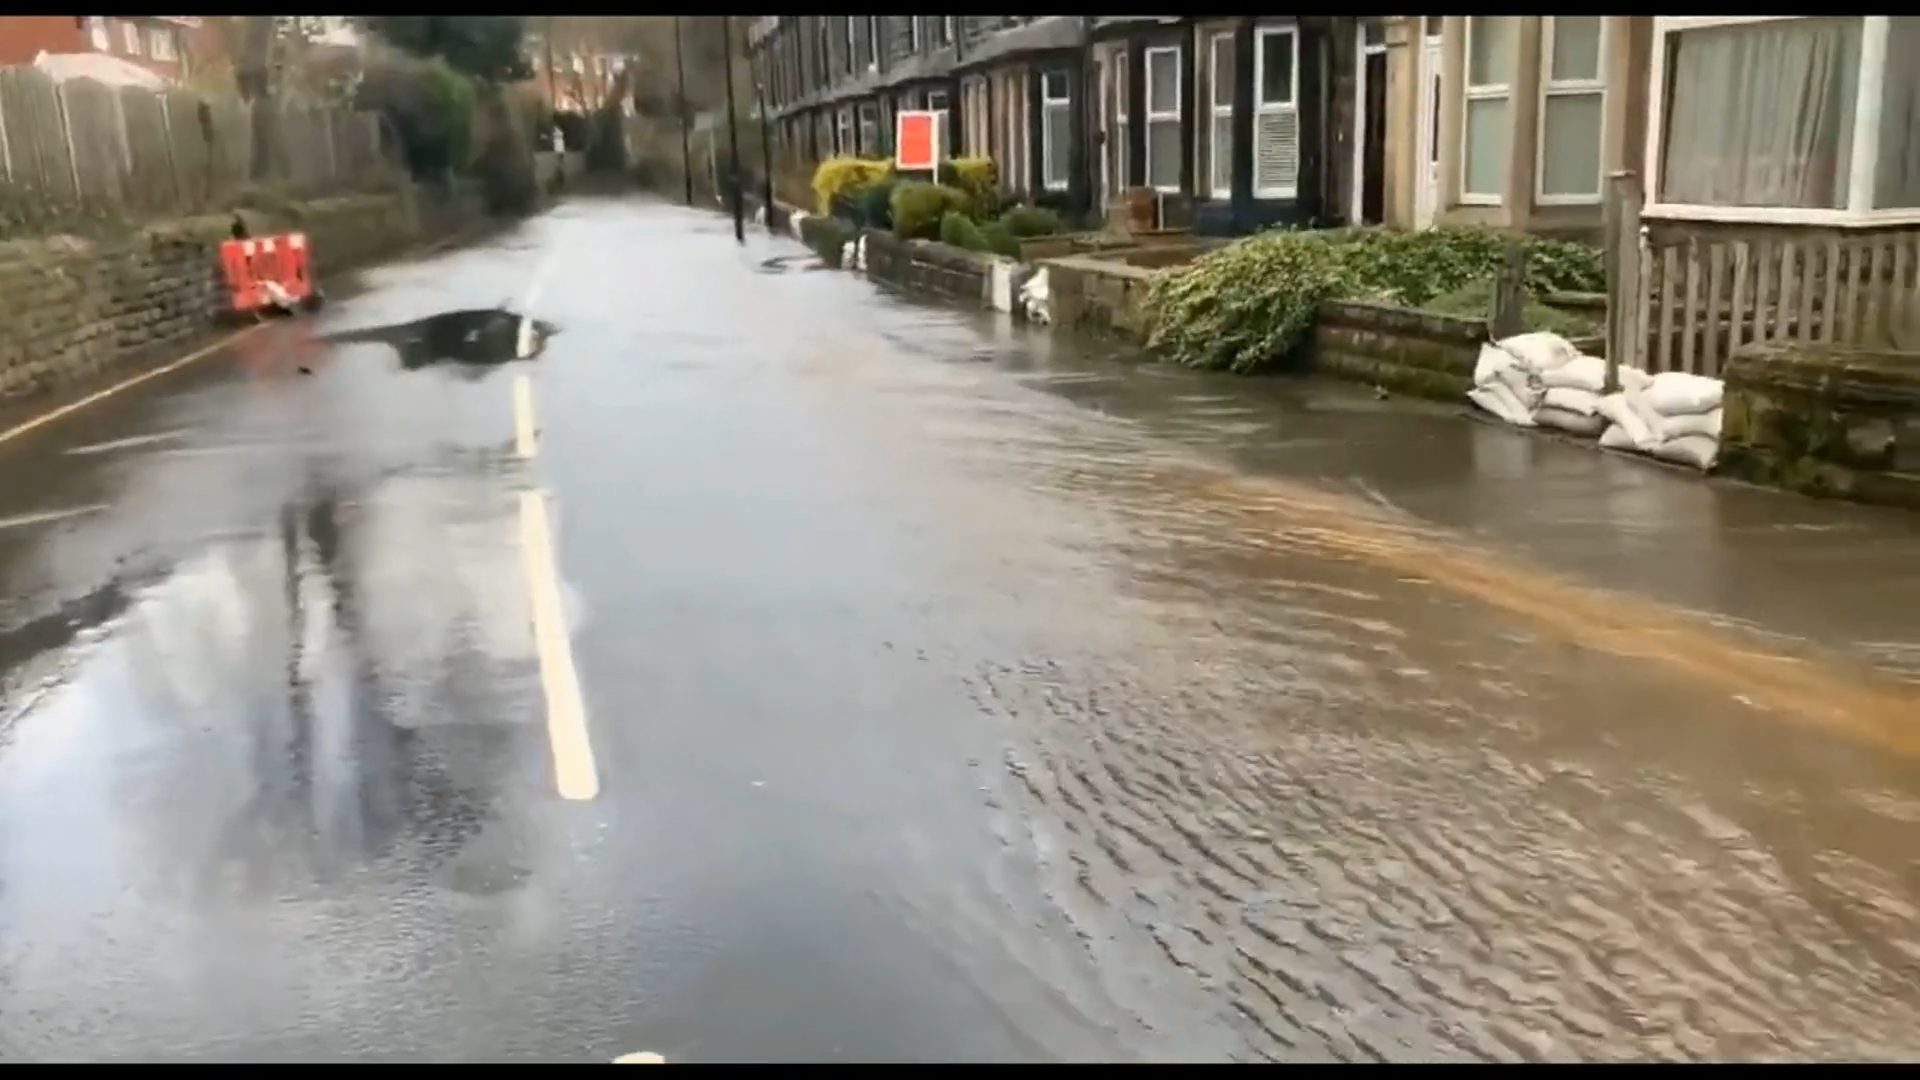 Yorkshire Dales hit by further floods as government pledges £4bn for defences - channel 4